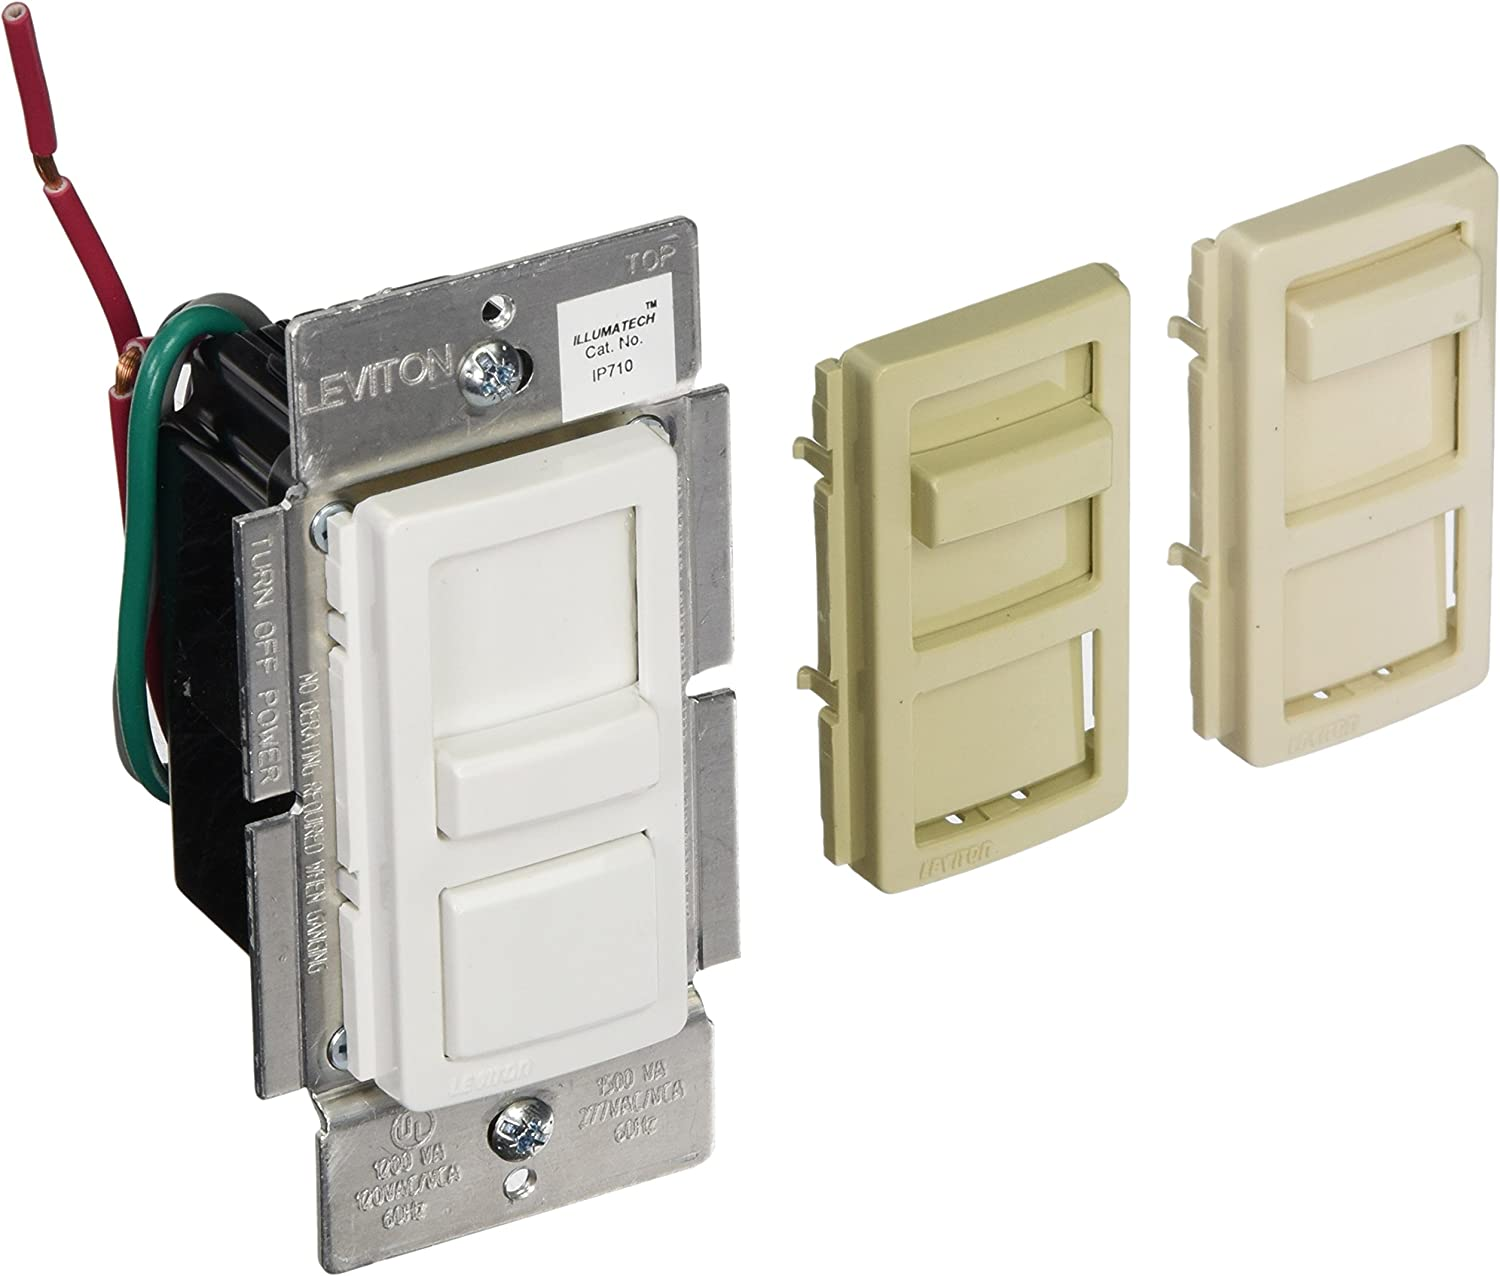 [SCHEMATICS_48YU]  Leviton IP710-LFZ IllumaTech Slide Dimmer for LED 0-10V Power Supplies,  1200VA, 10A LED, 120/277 VAC, White w/ Color Change Kits Included - Wall  Dimmer Switches - Amazon.com | Leviton Ip710 Wiring Diagram Lf |  | Amazon.com